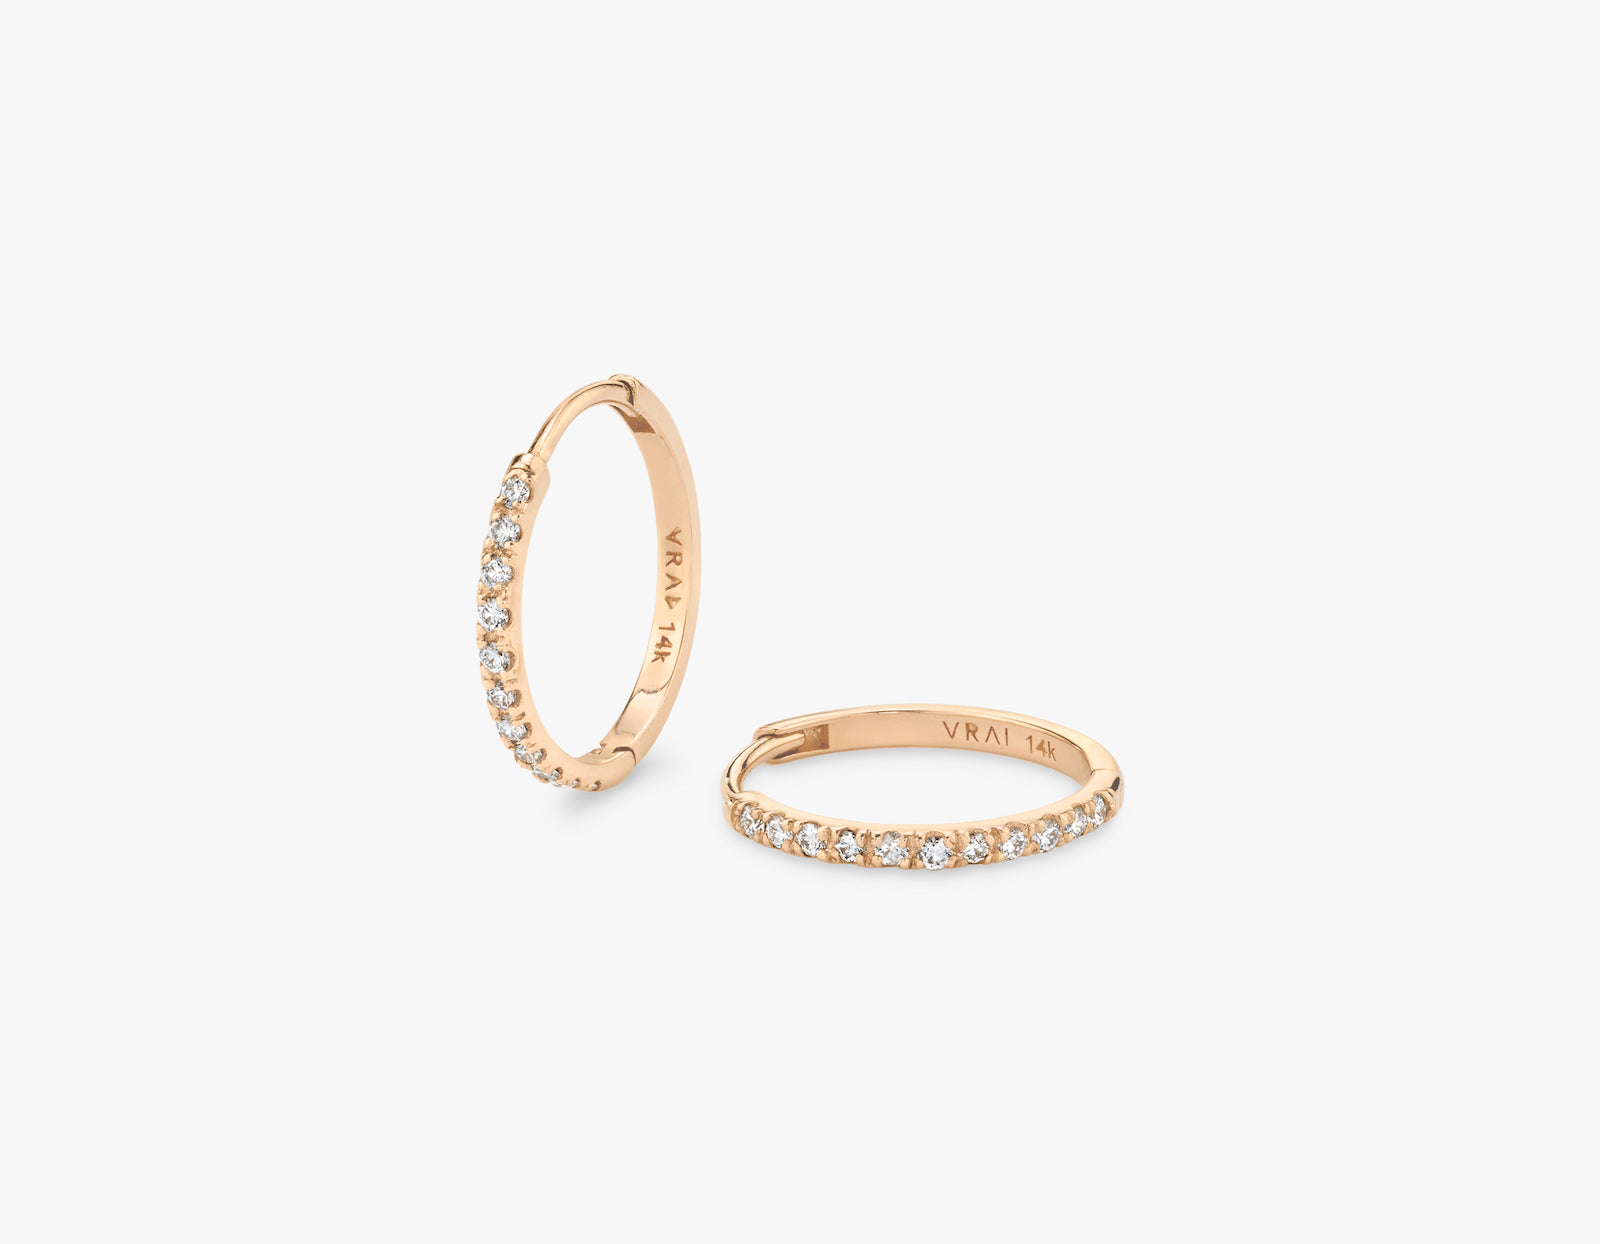 Vrai 14k solid gold simple classic Pave Diamond Huggie Hoops earrings hinge closure, 14K Rose Gold